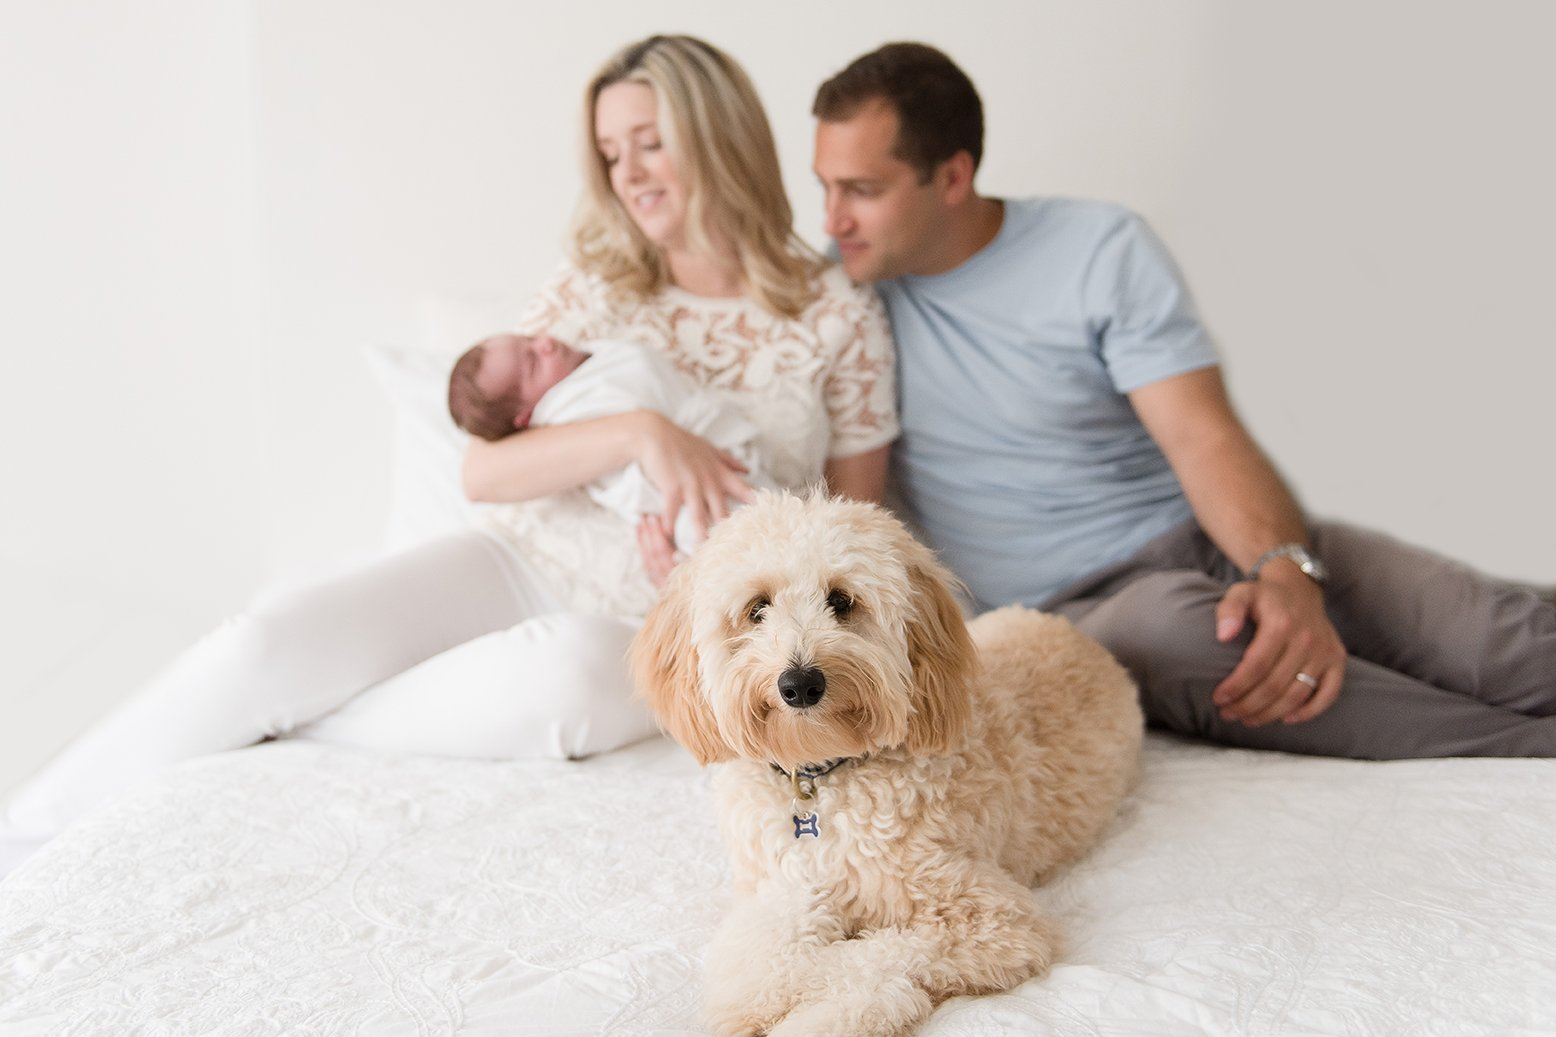 Lifestyle newborn session with family and dog in back bay natural light newborn photography studio by beth miga photography